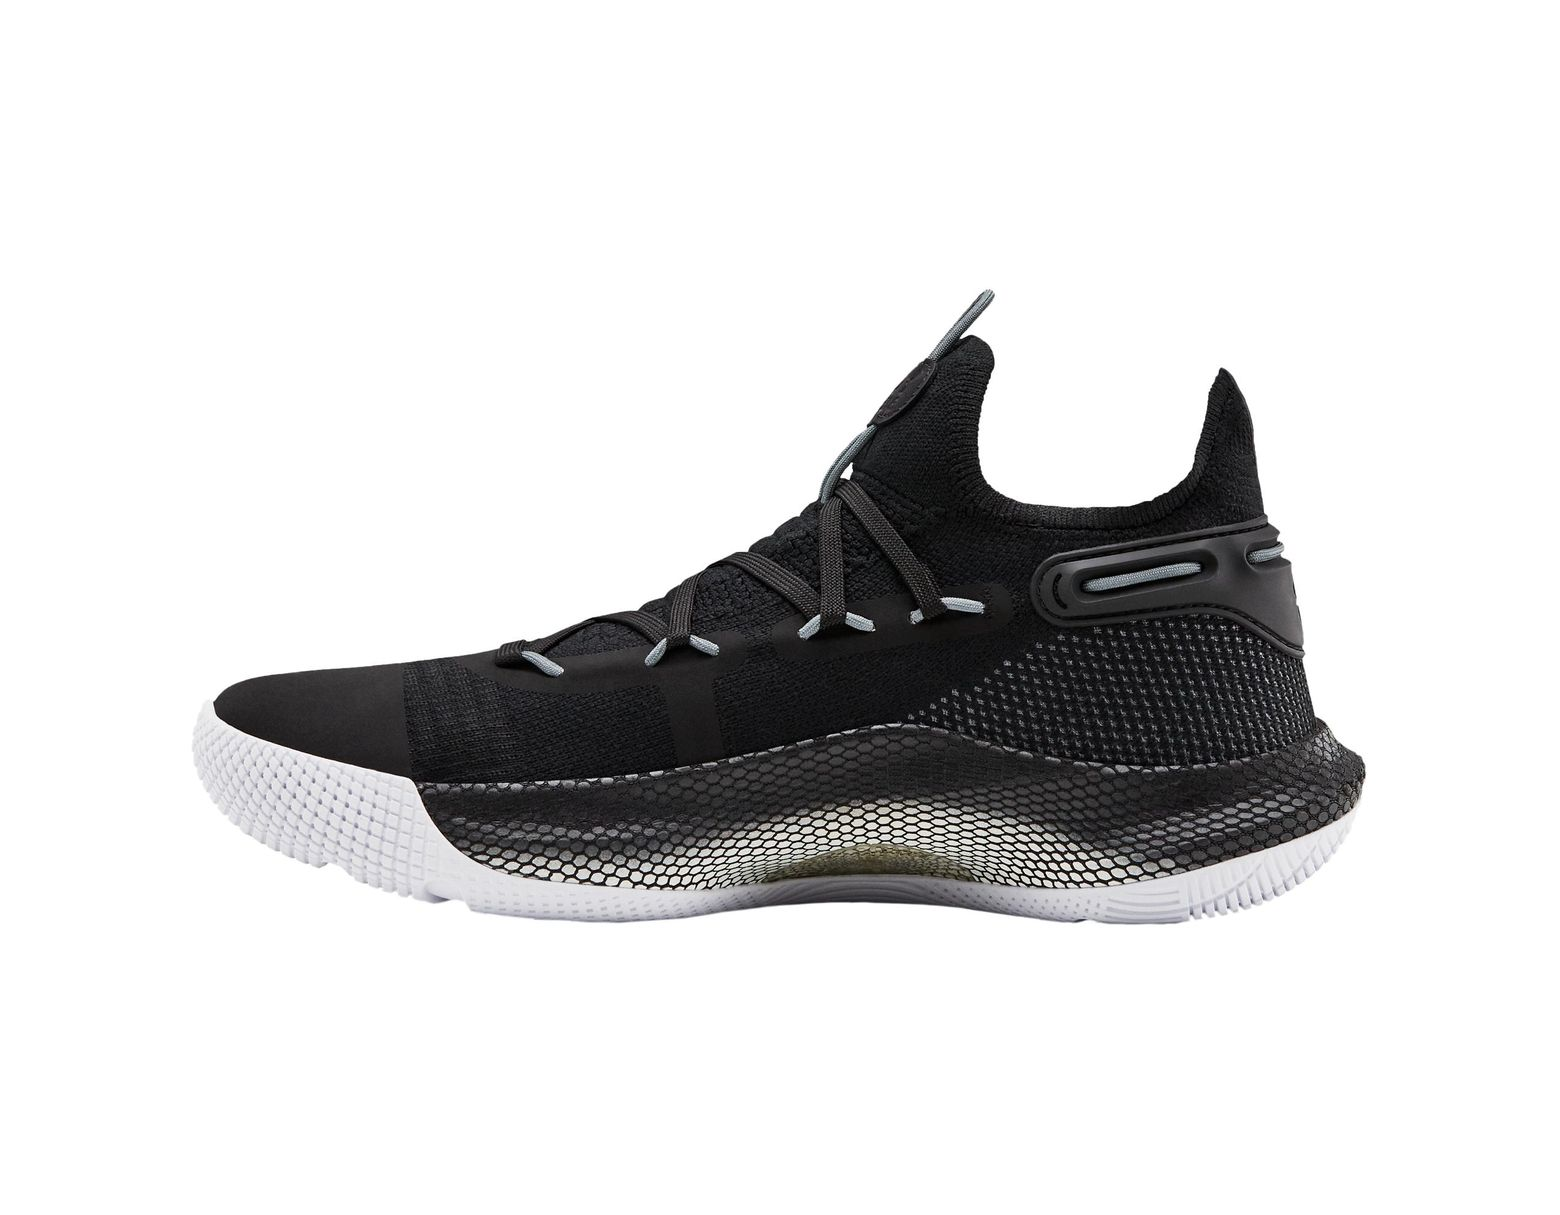 the latest 59f74 7b7e1 Men's Black Curry 6 Basketball Shoes